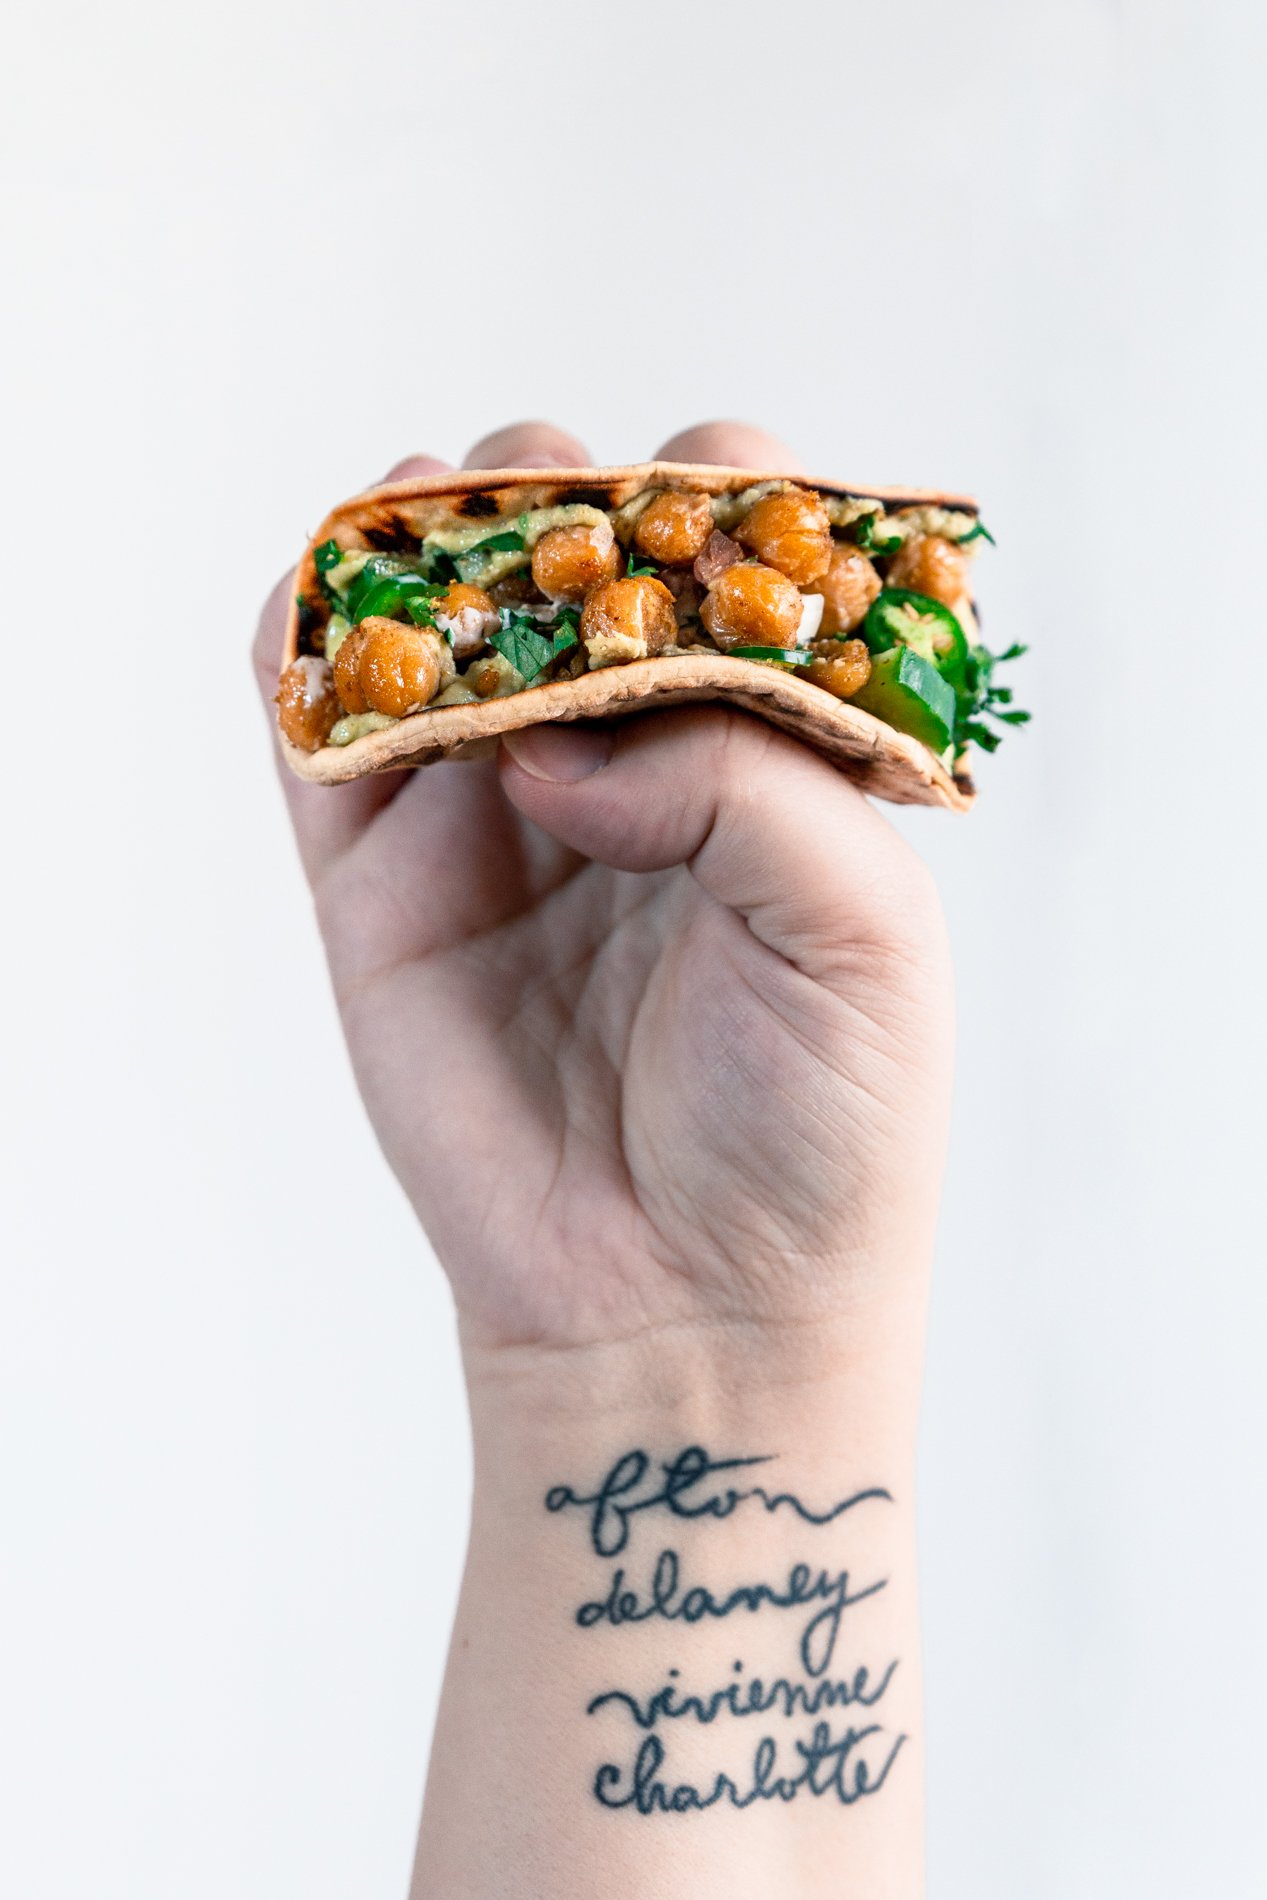 view of a forearm holding a deconstructed falafel pita taco.